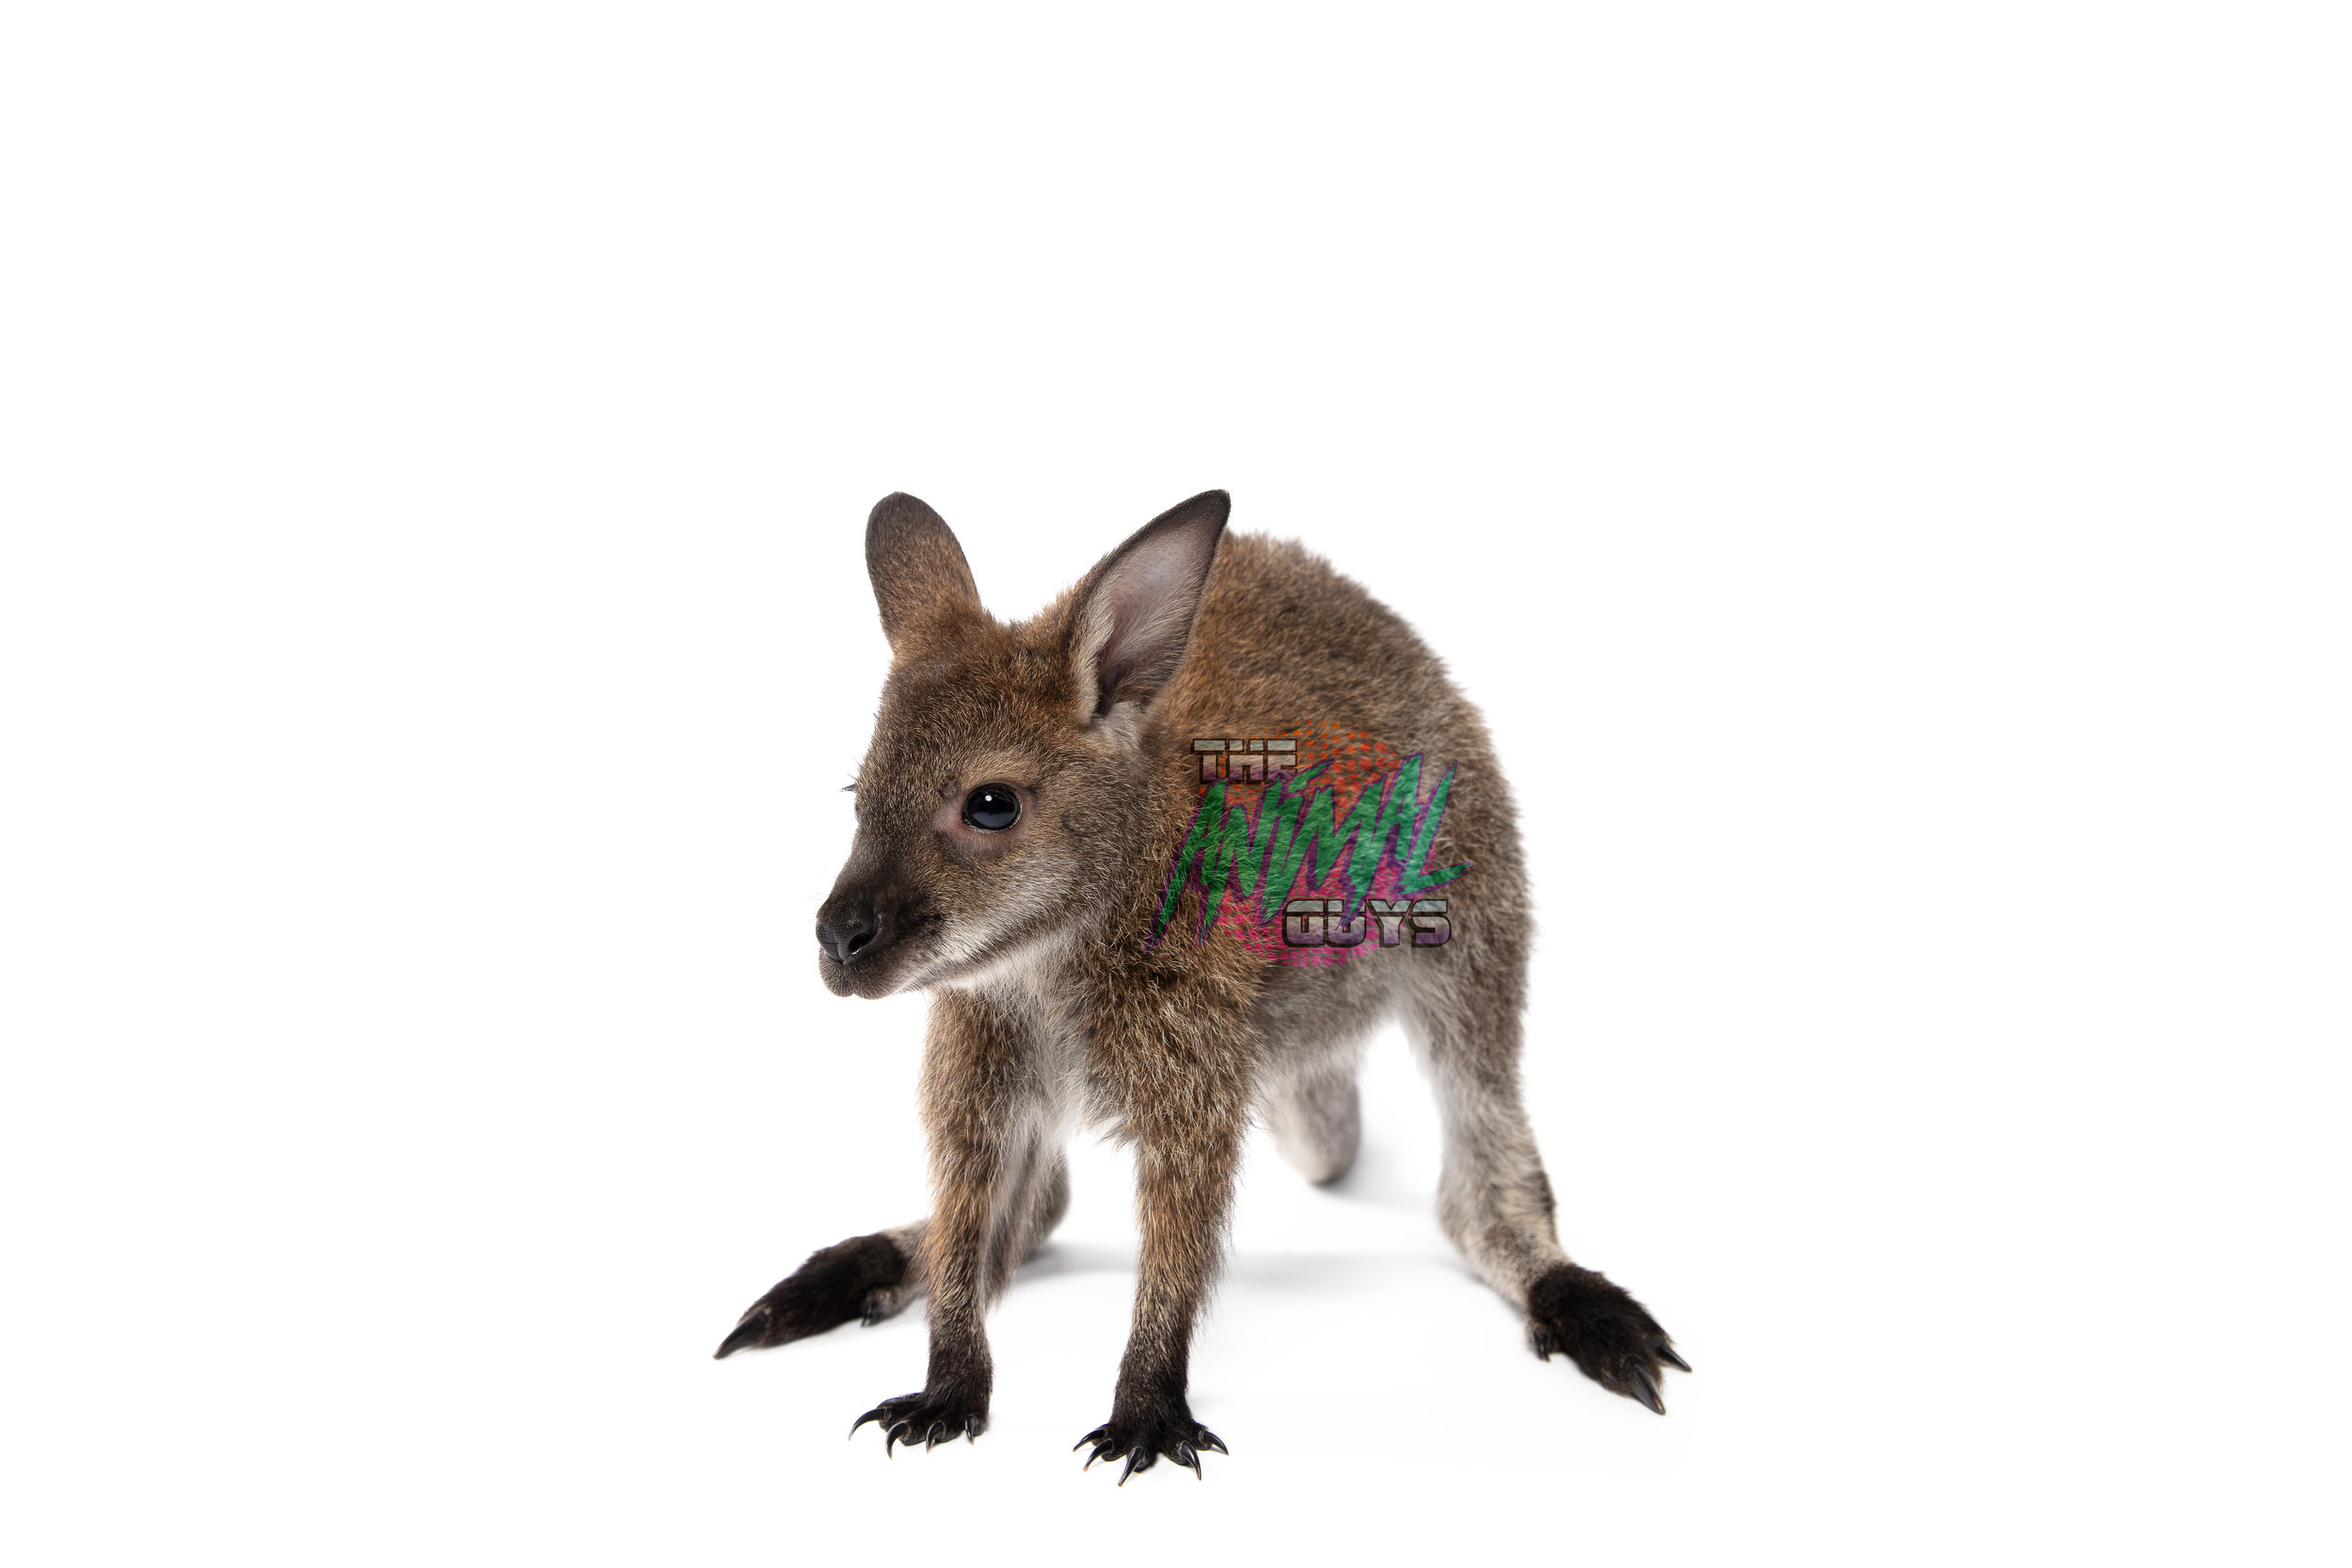 ELVIS - BENNETS WALLABY - 6mo OLDCOOLEST BABY EVER!LOVES TO PLAY